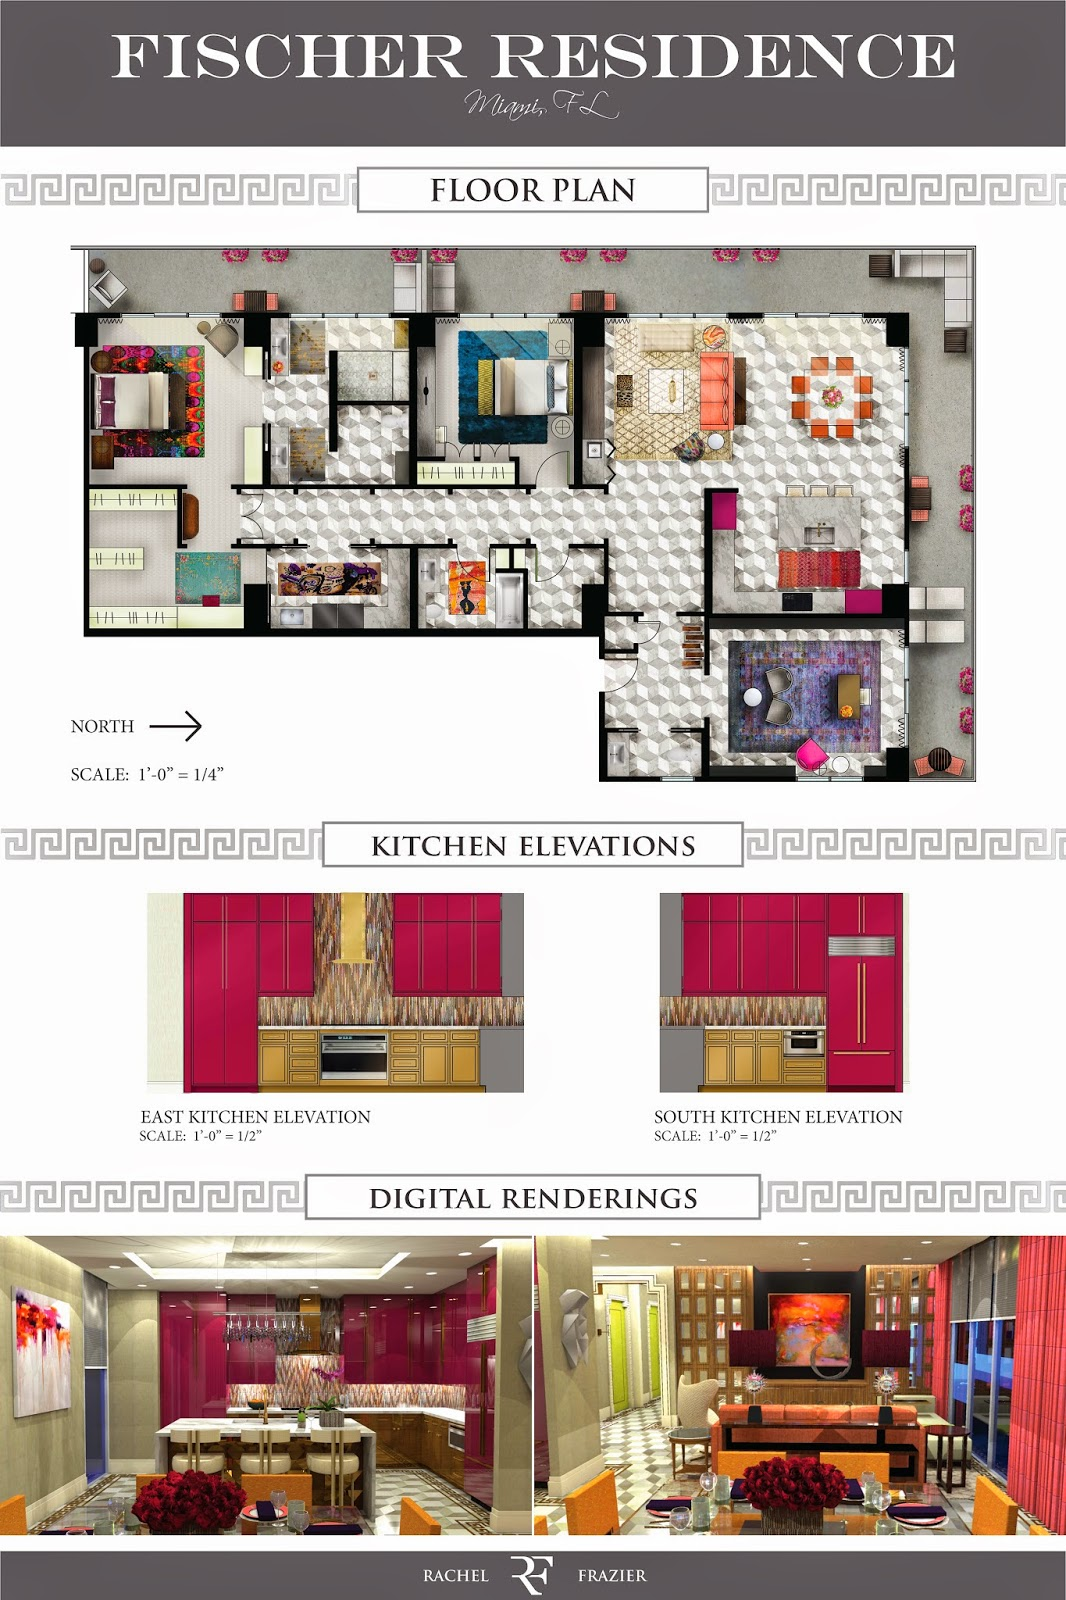 Interior Design Projects For Students Pdf